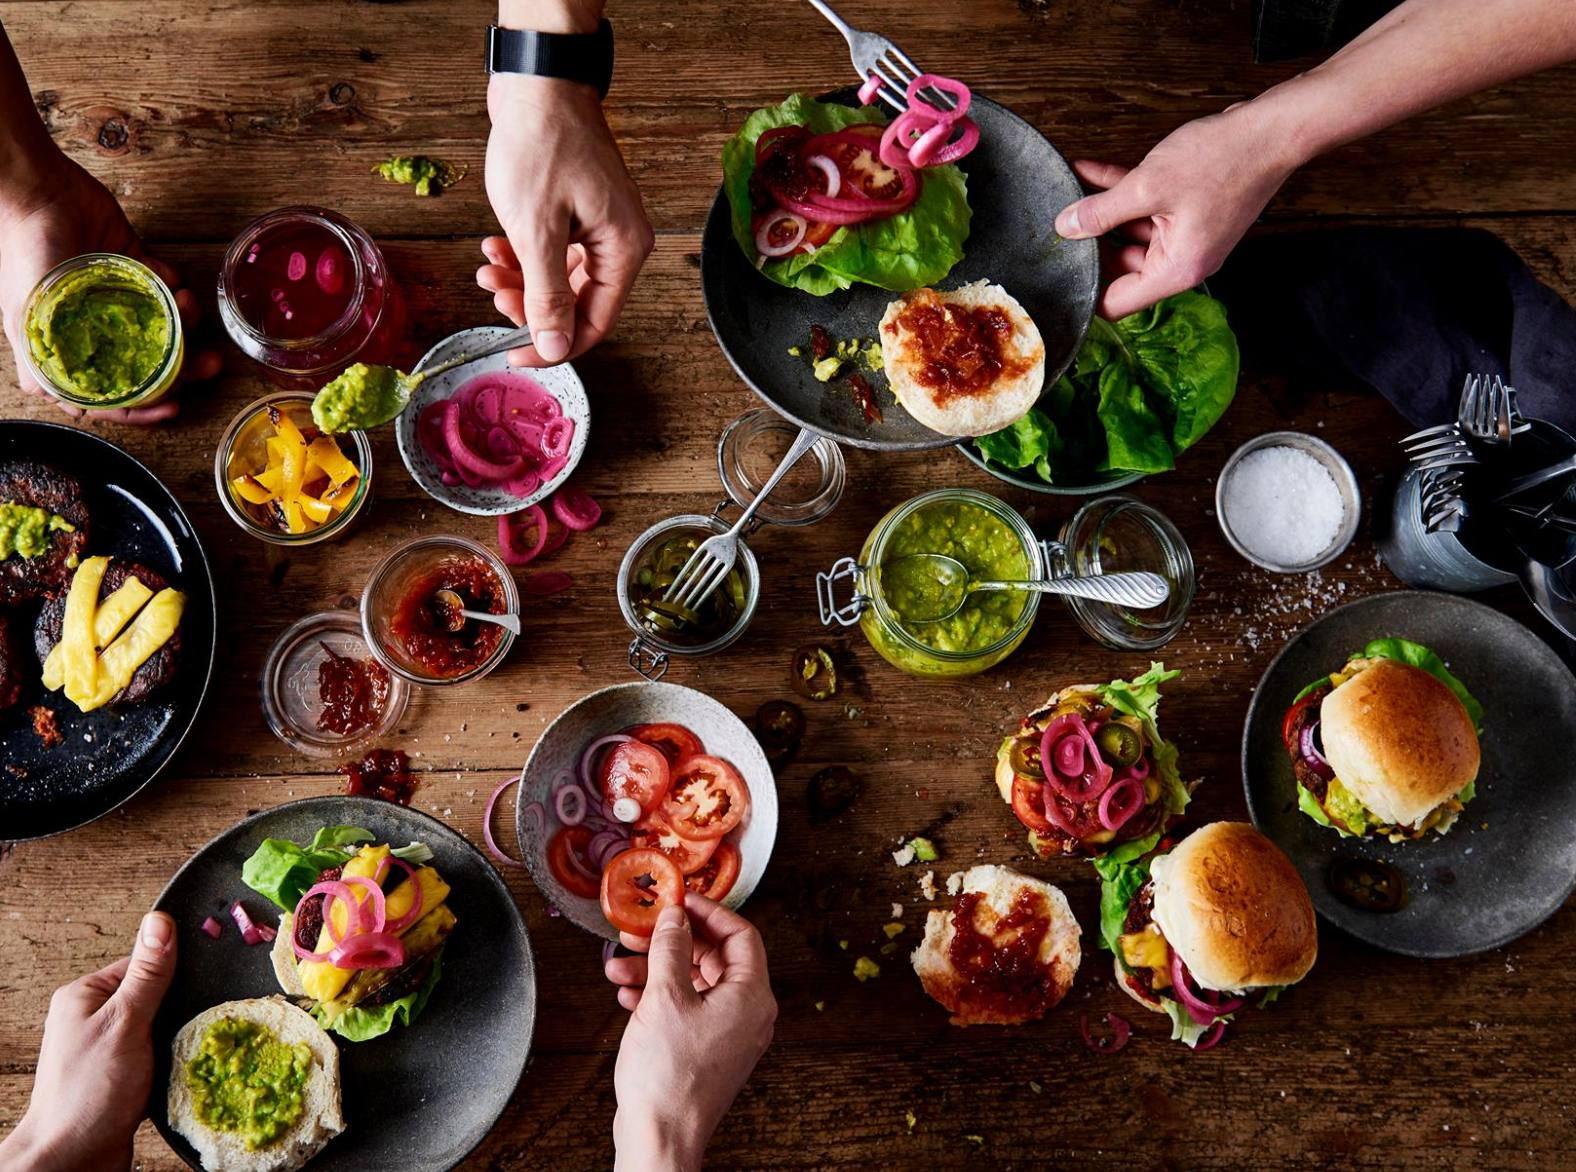 Vegan food by Naturli' Foods